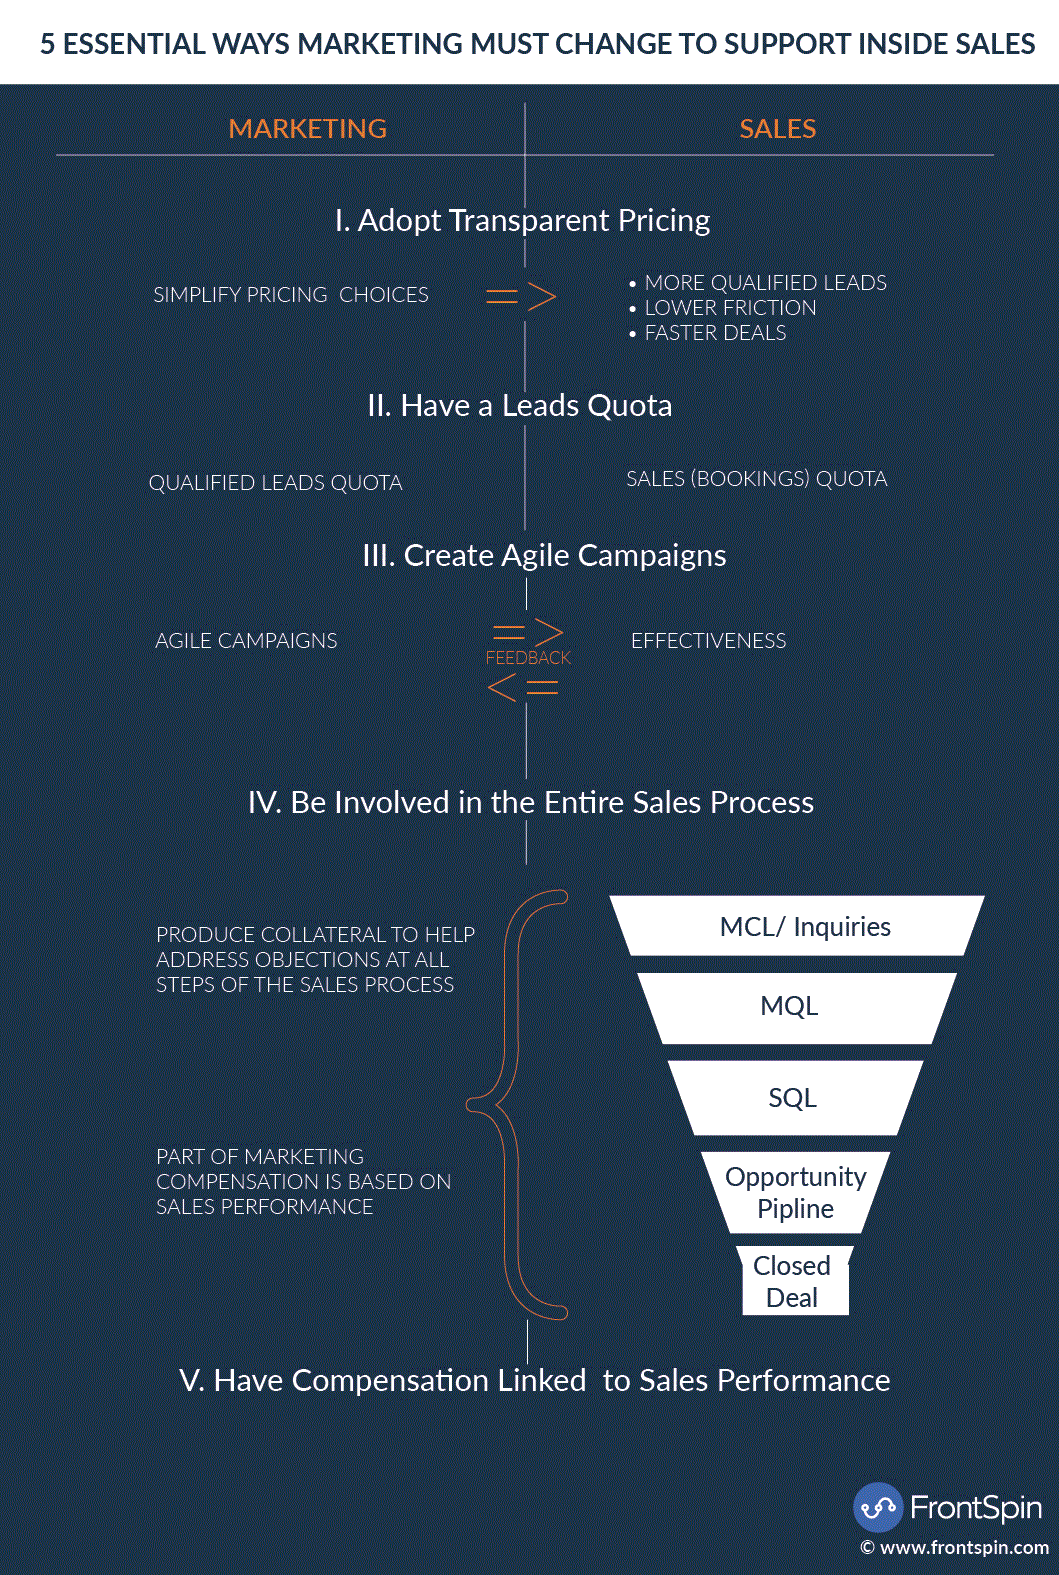 5-Essential-Ways-Marketing-Must-Change-To-Support-Inside-Sales